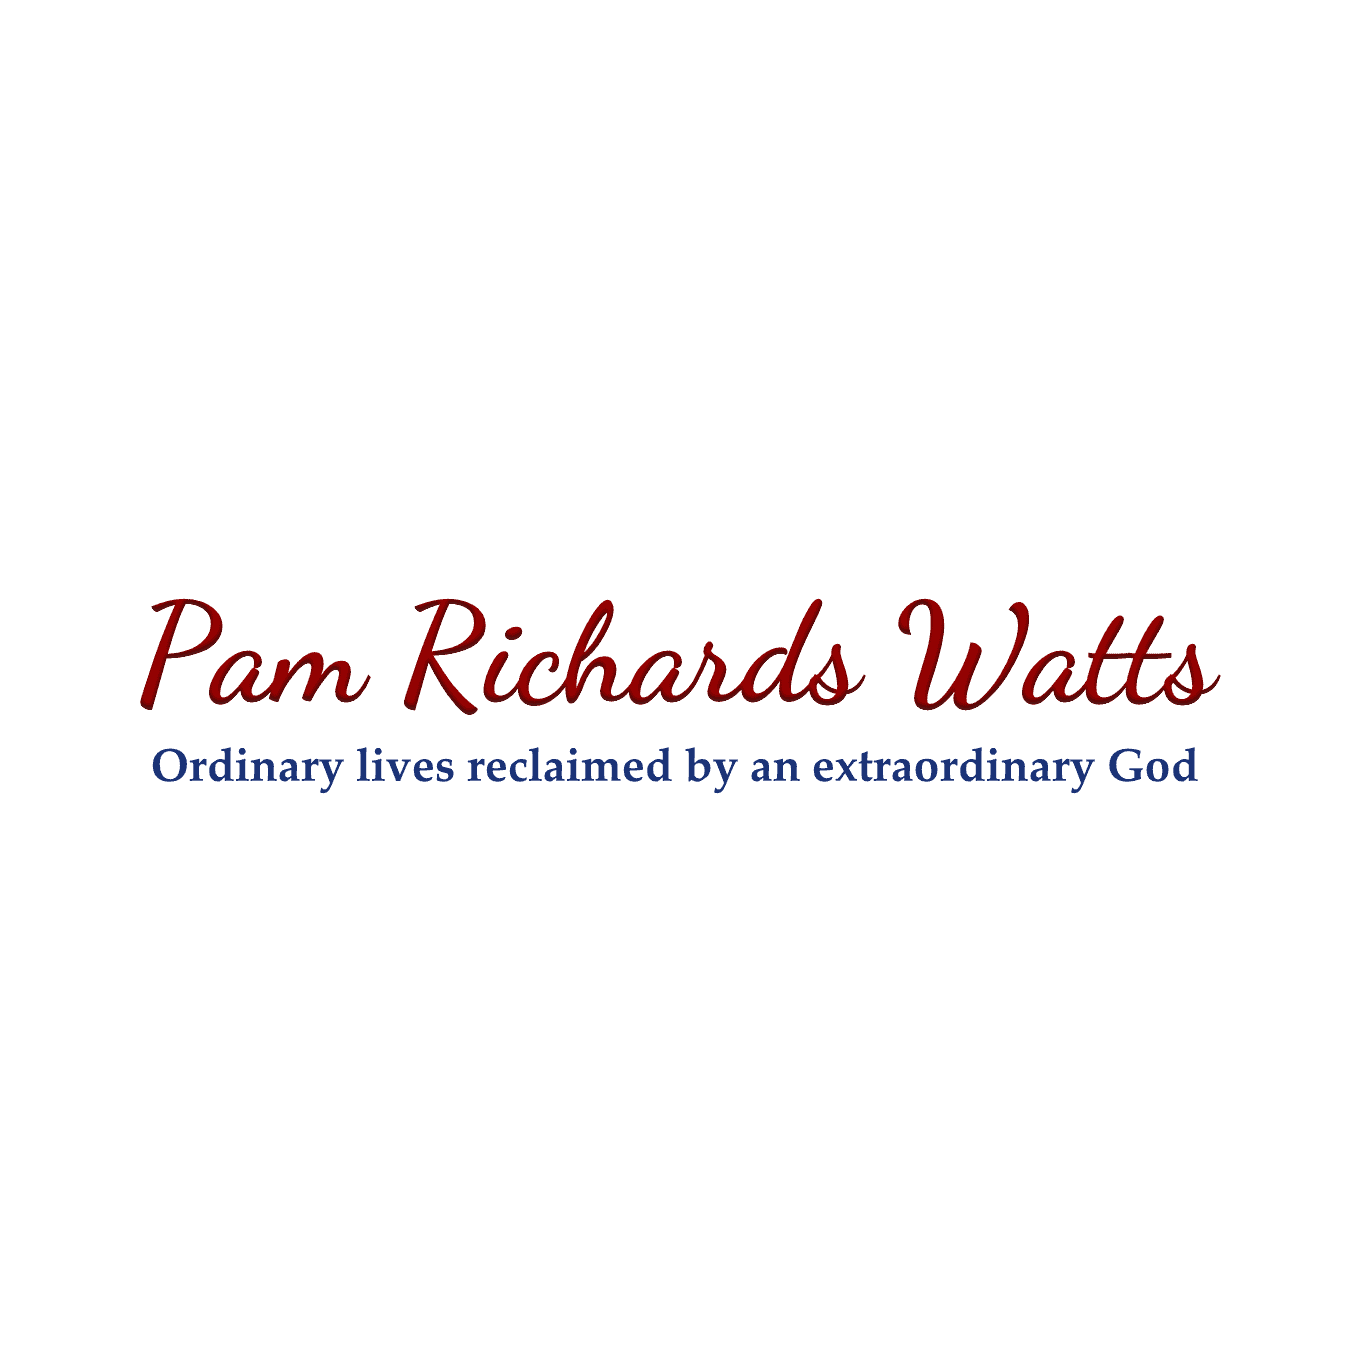 PamRichardsWatts.com